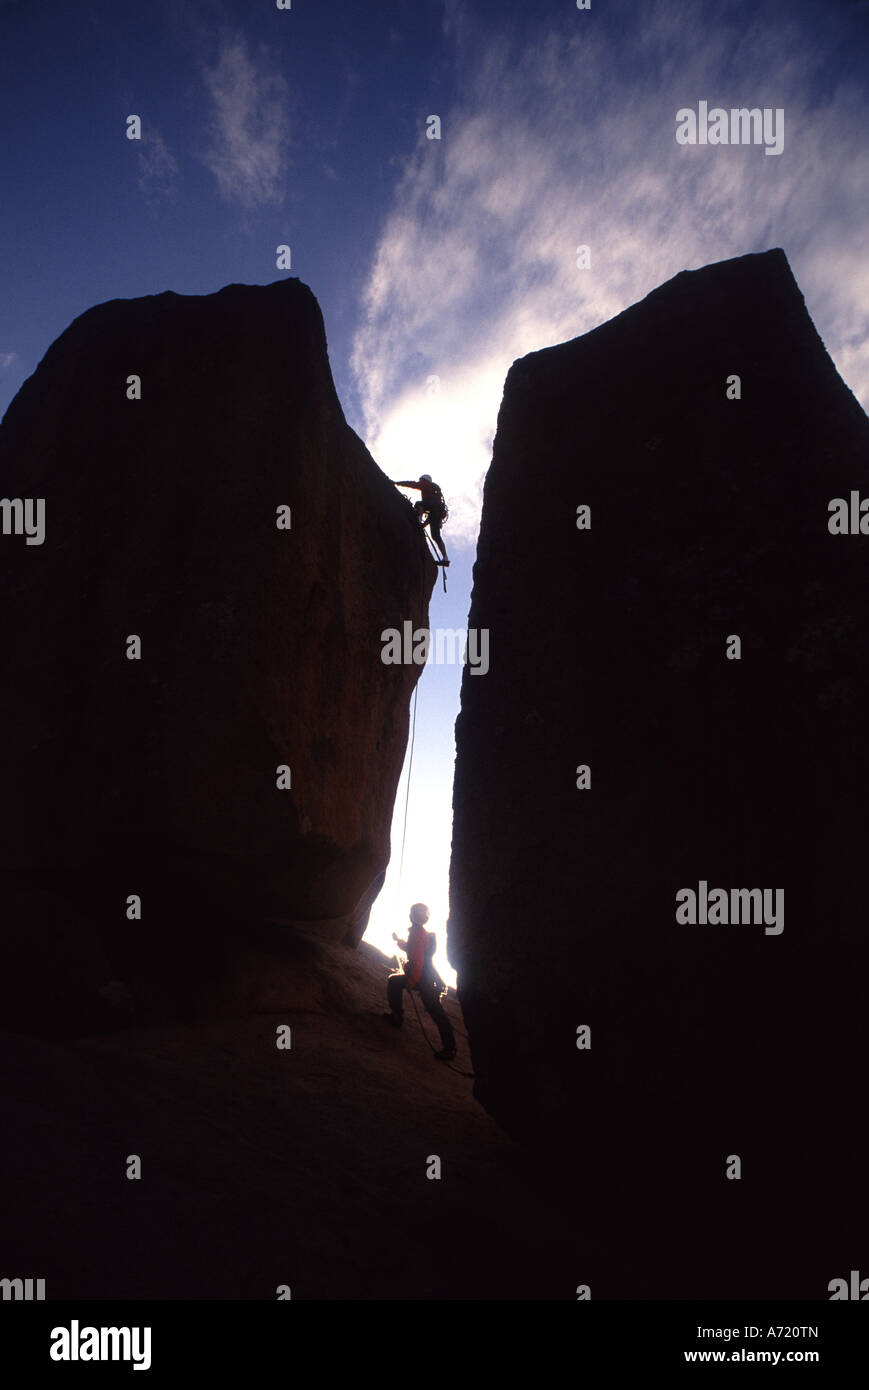 The silhouette of two men can be seen rock climbing - Stock Image